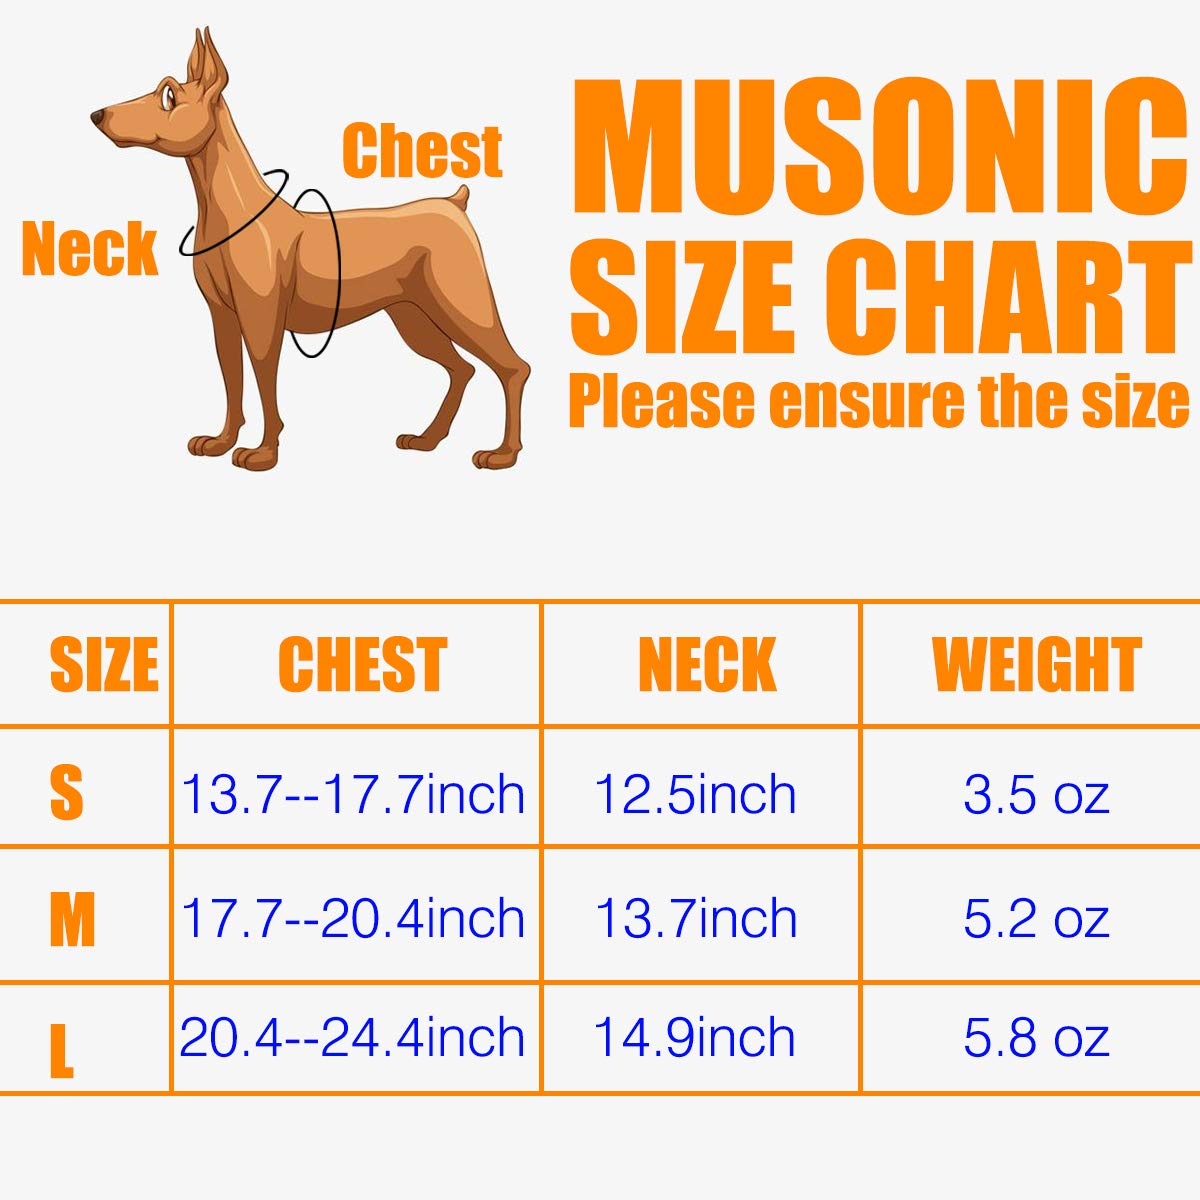 Musonic No Pull Dog Harness for Small Dogs Adjustable Reflective Lightweight Vest Harness Easy Fit and Escape Resistant for Outdoor Training and Walking, Leash Included (M, Blue)